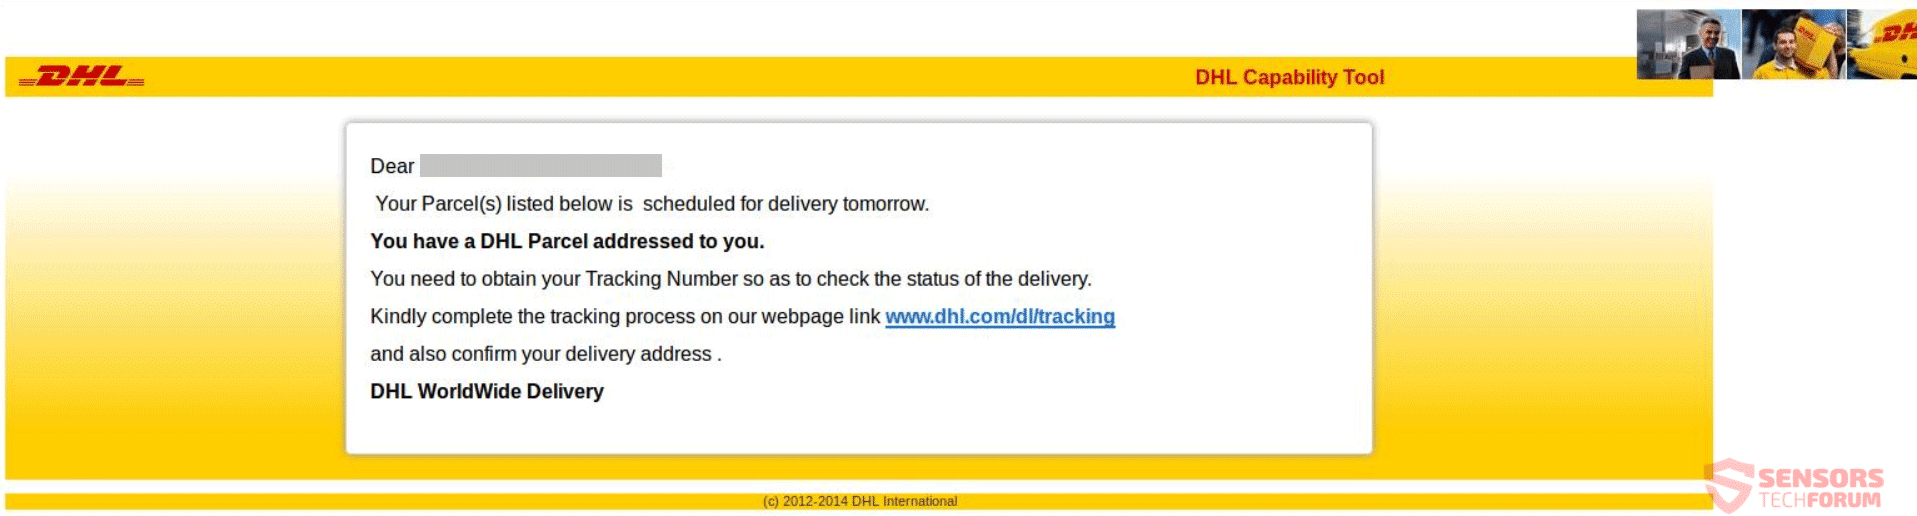 DHL Phishing Scams – How to Get Rid of Them